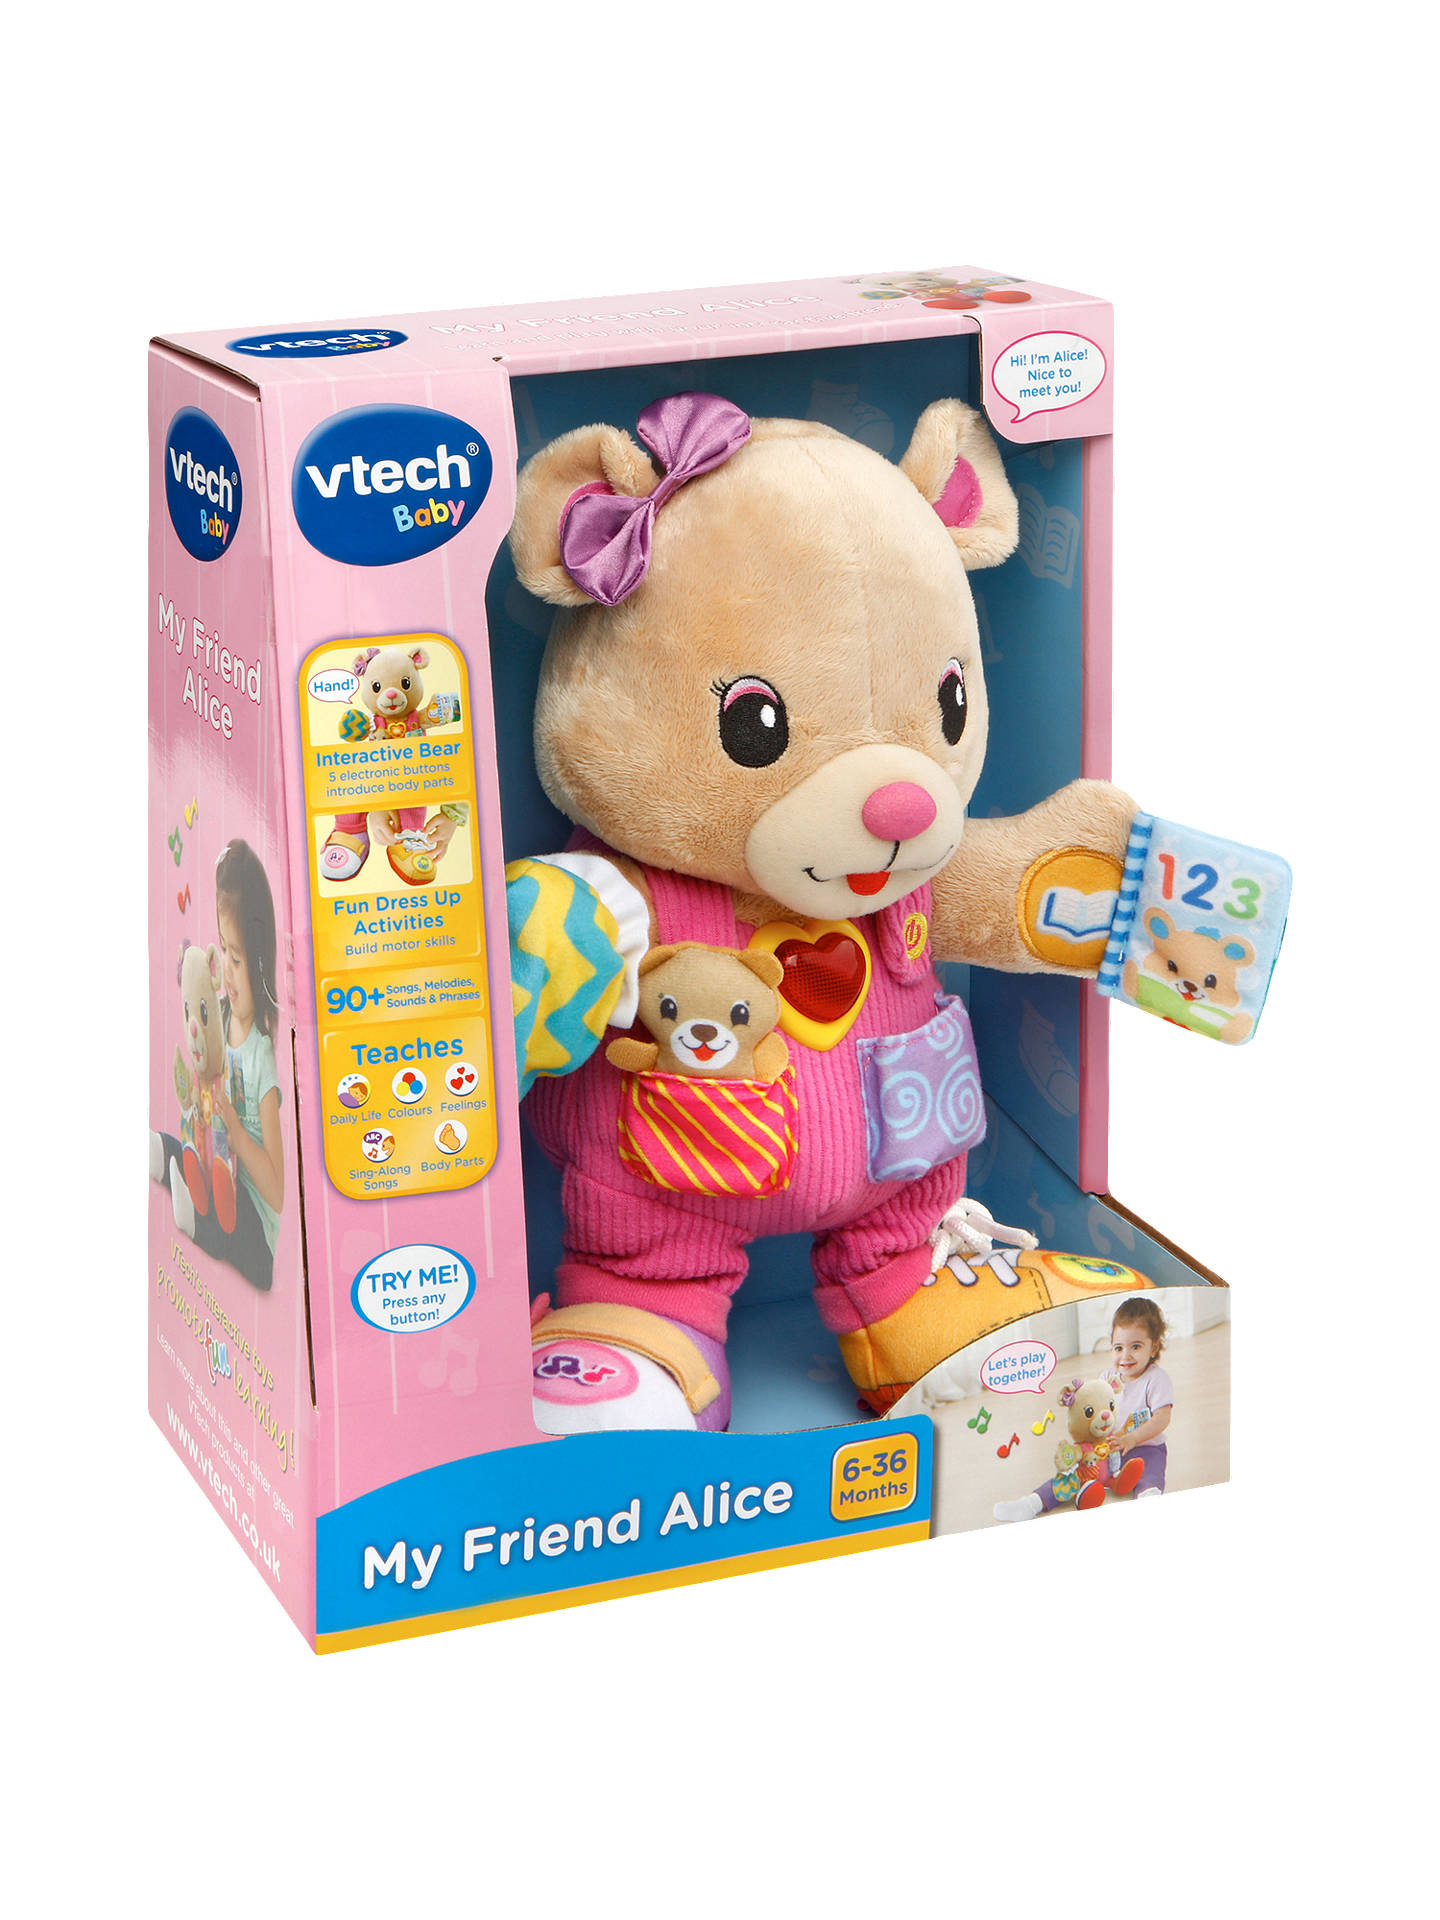 vtech baby  VTech Baby My Friend Alice Furry Toy at John Lewis & Partners